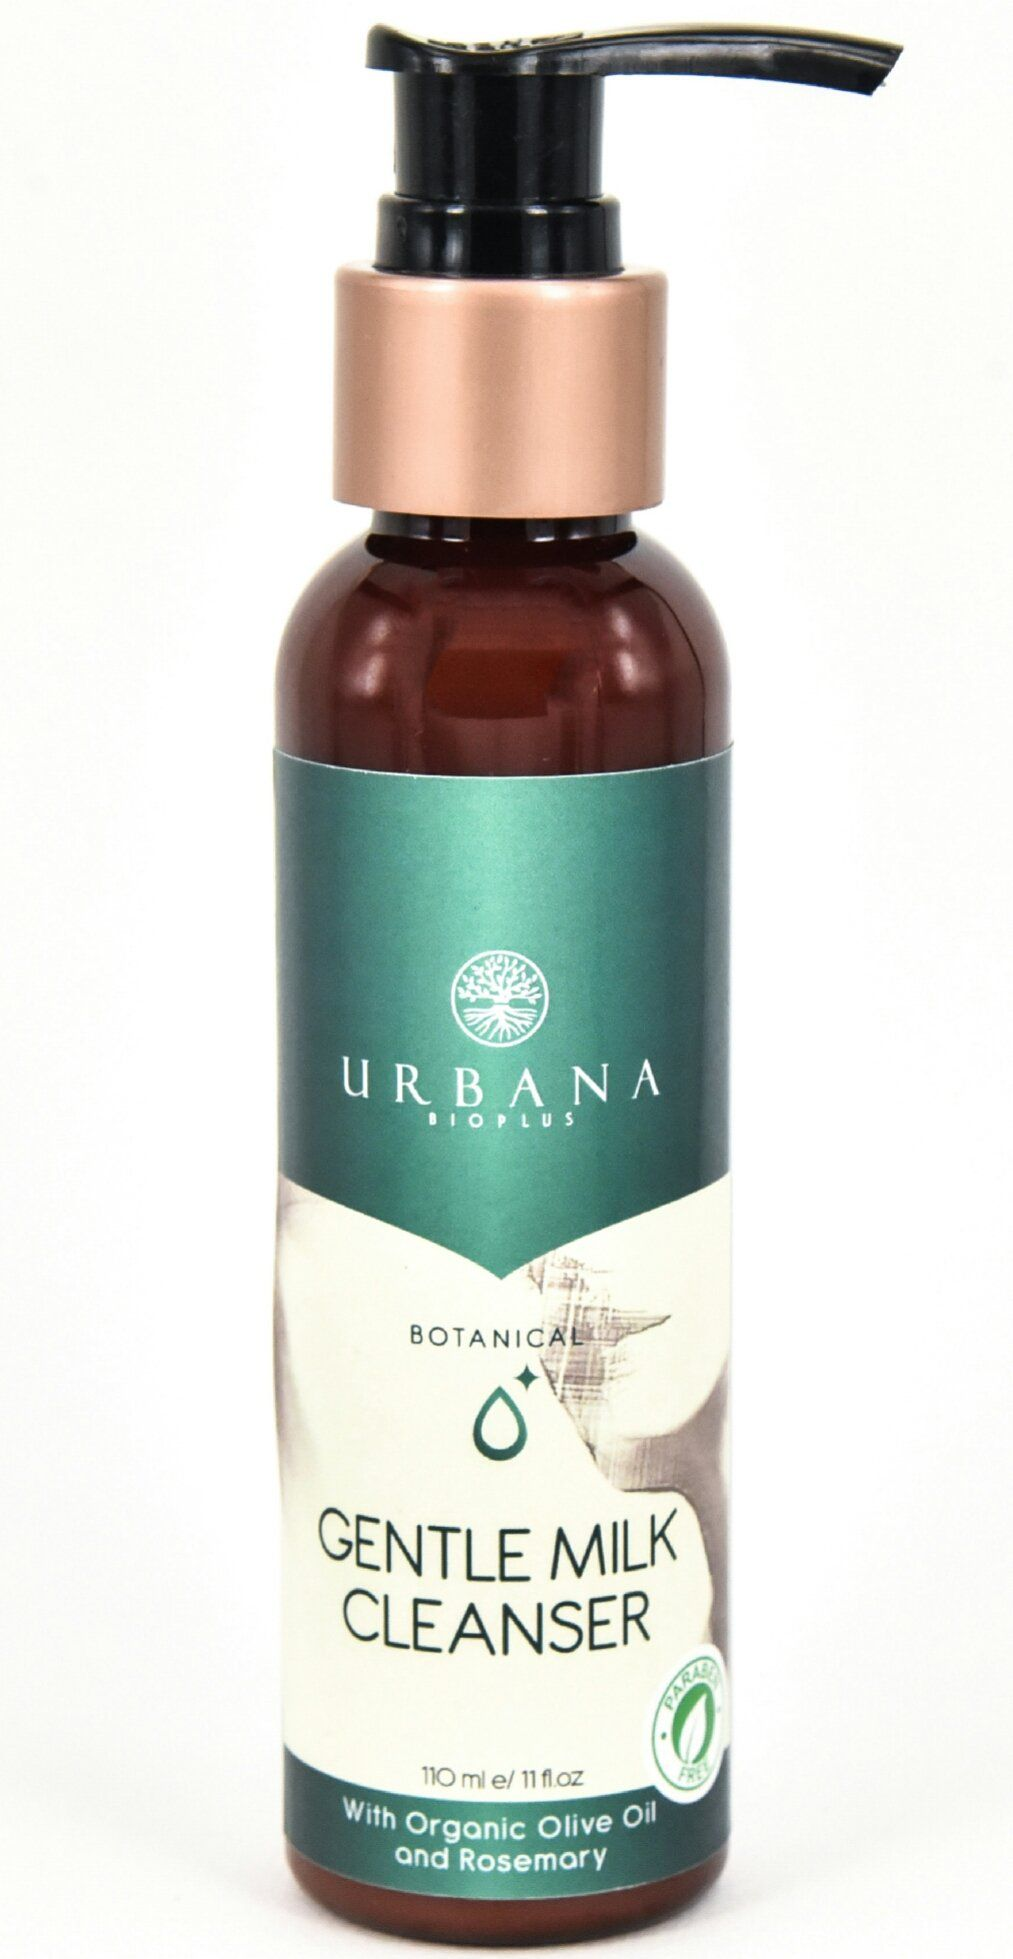 Acne Face Wash *** URBANA BIOPLUS Botanical Gentle Milk